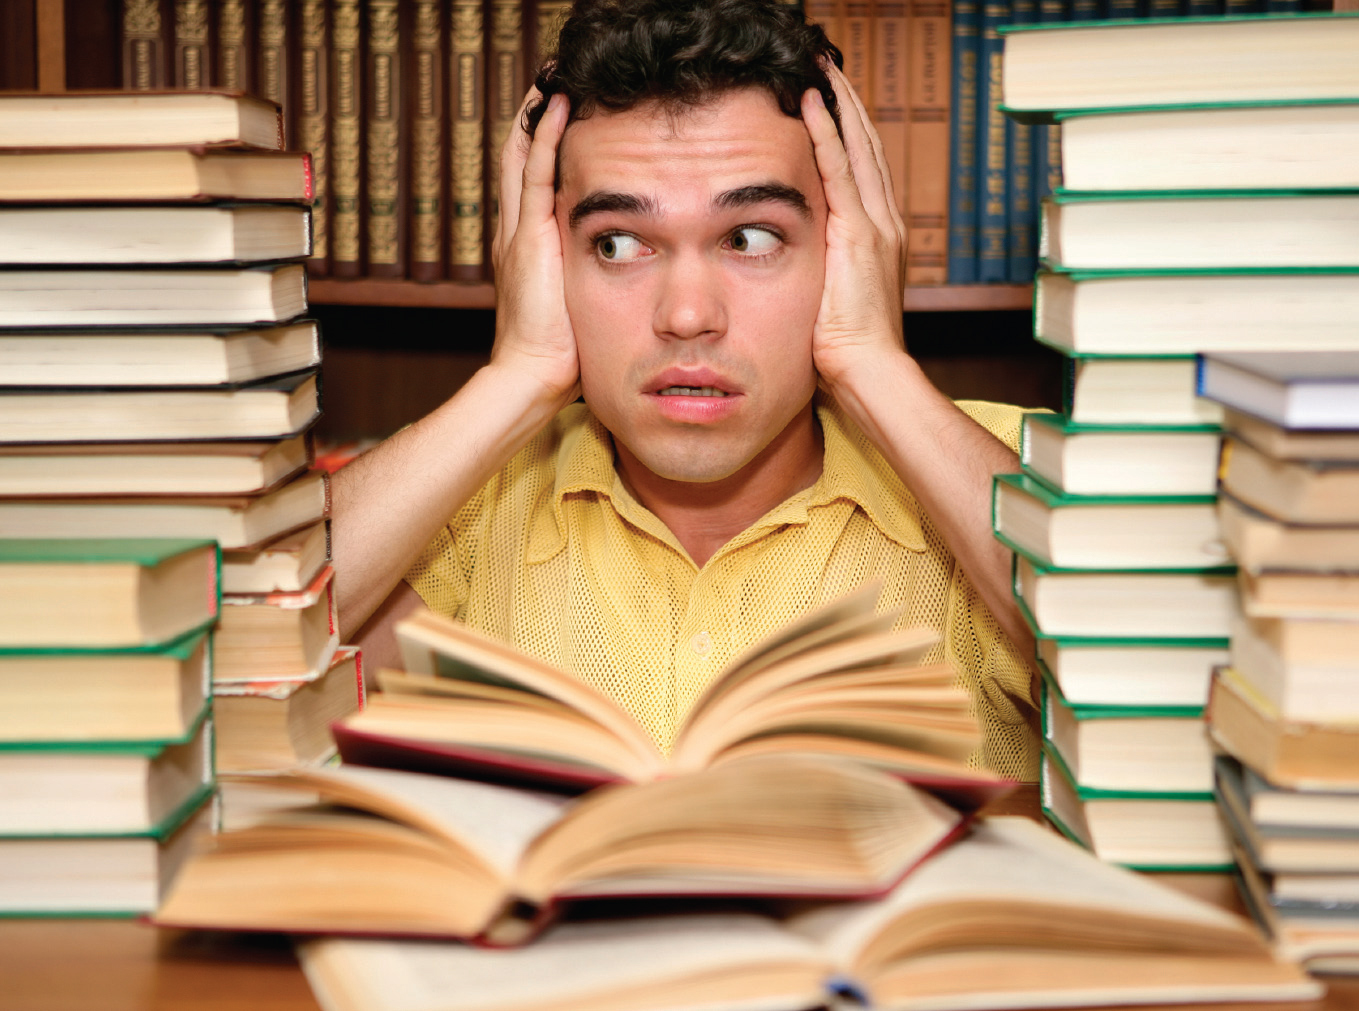 Man surrounded by stacks of books looking anxious